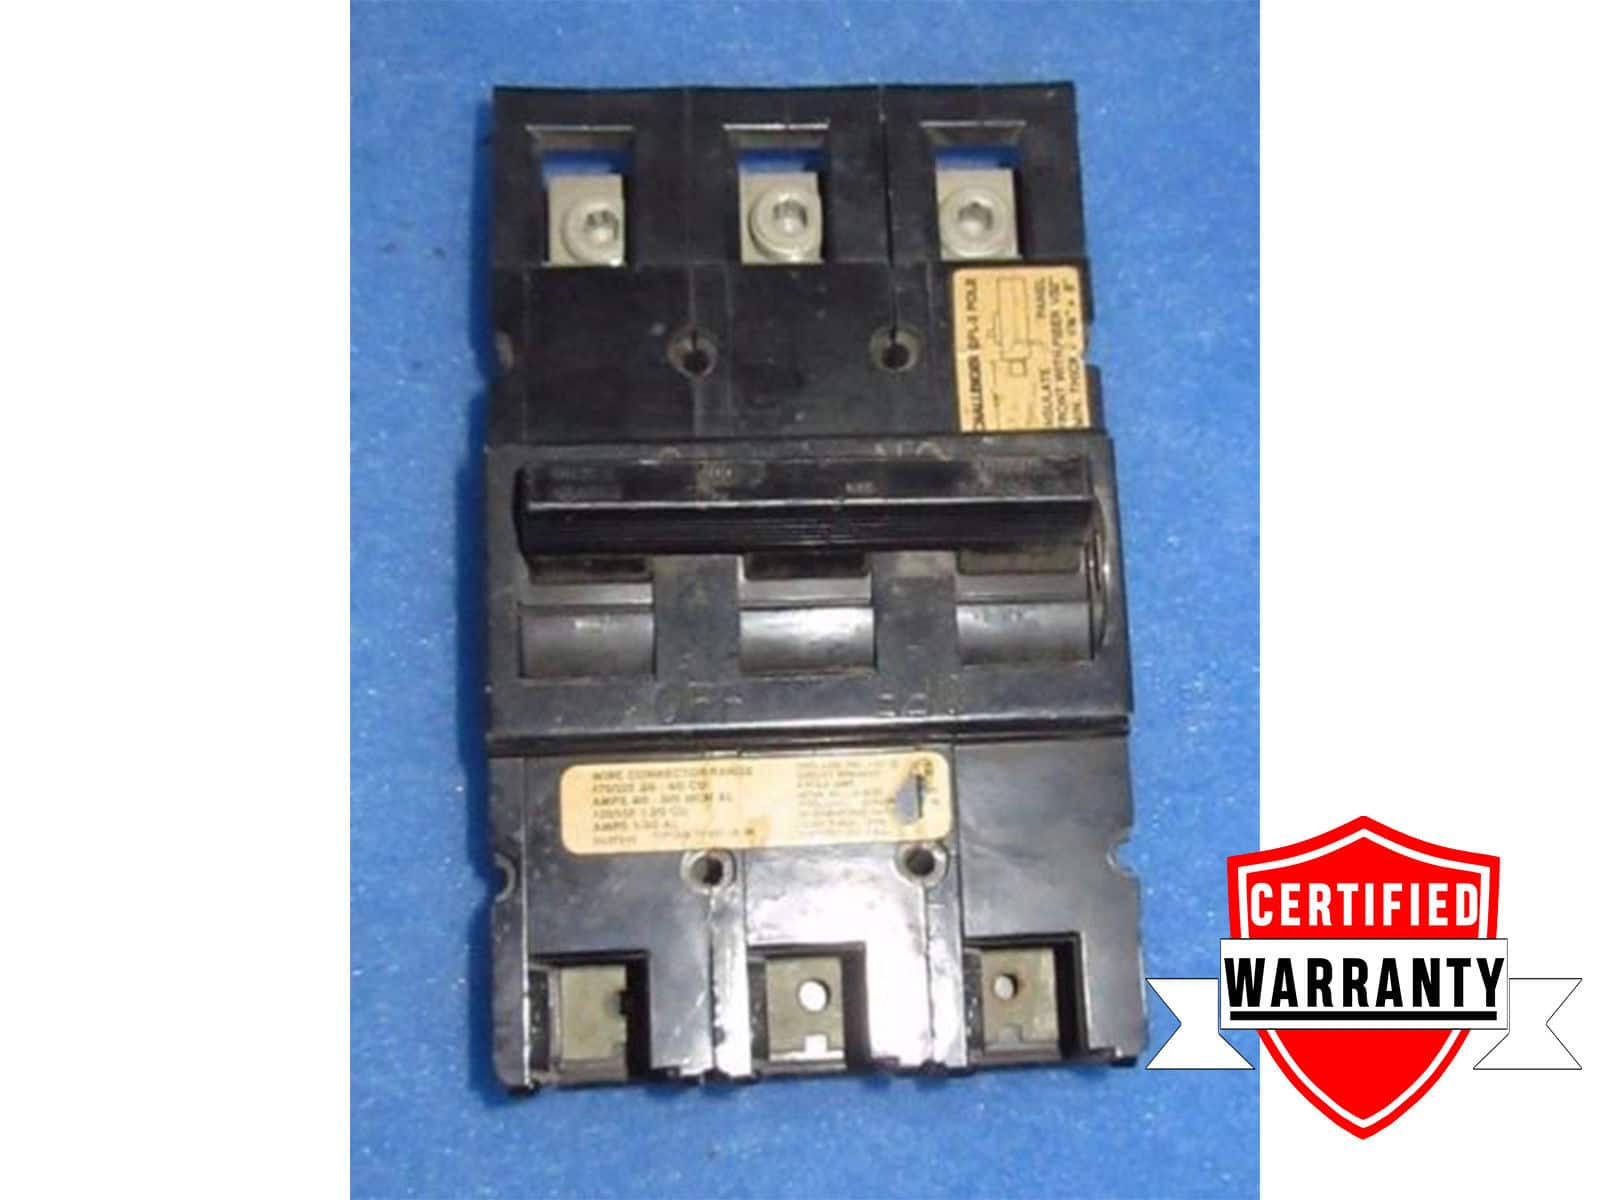 Circuit Breakers New Merlin Gerin 15 Amp Circuit Breaker Circuit